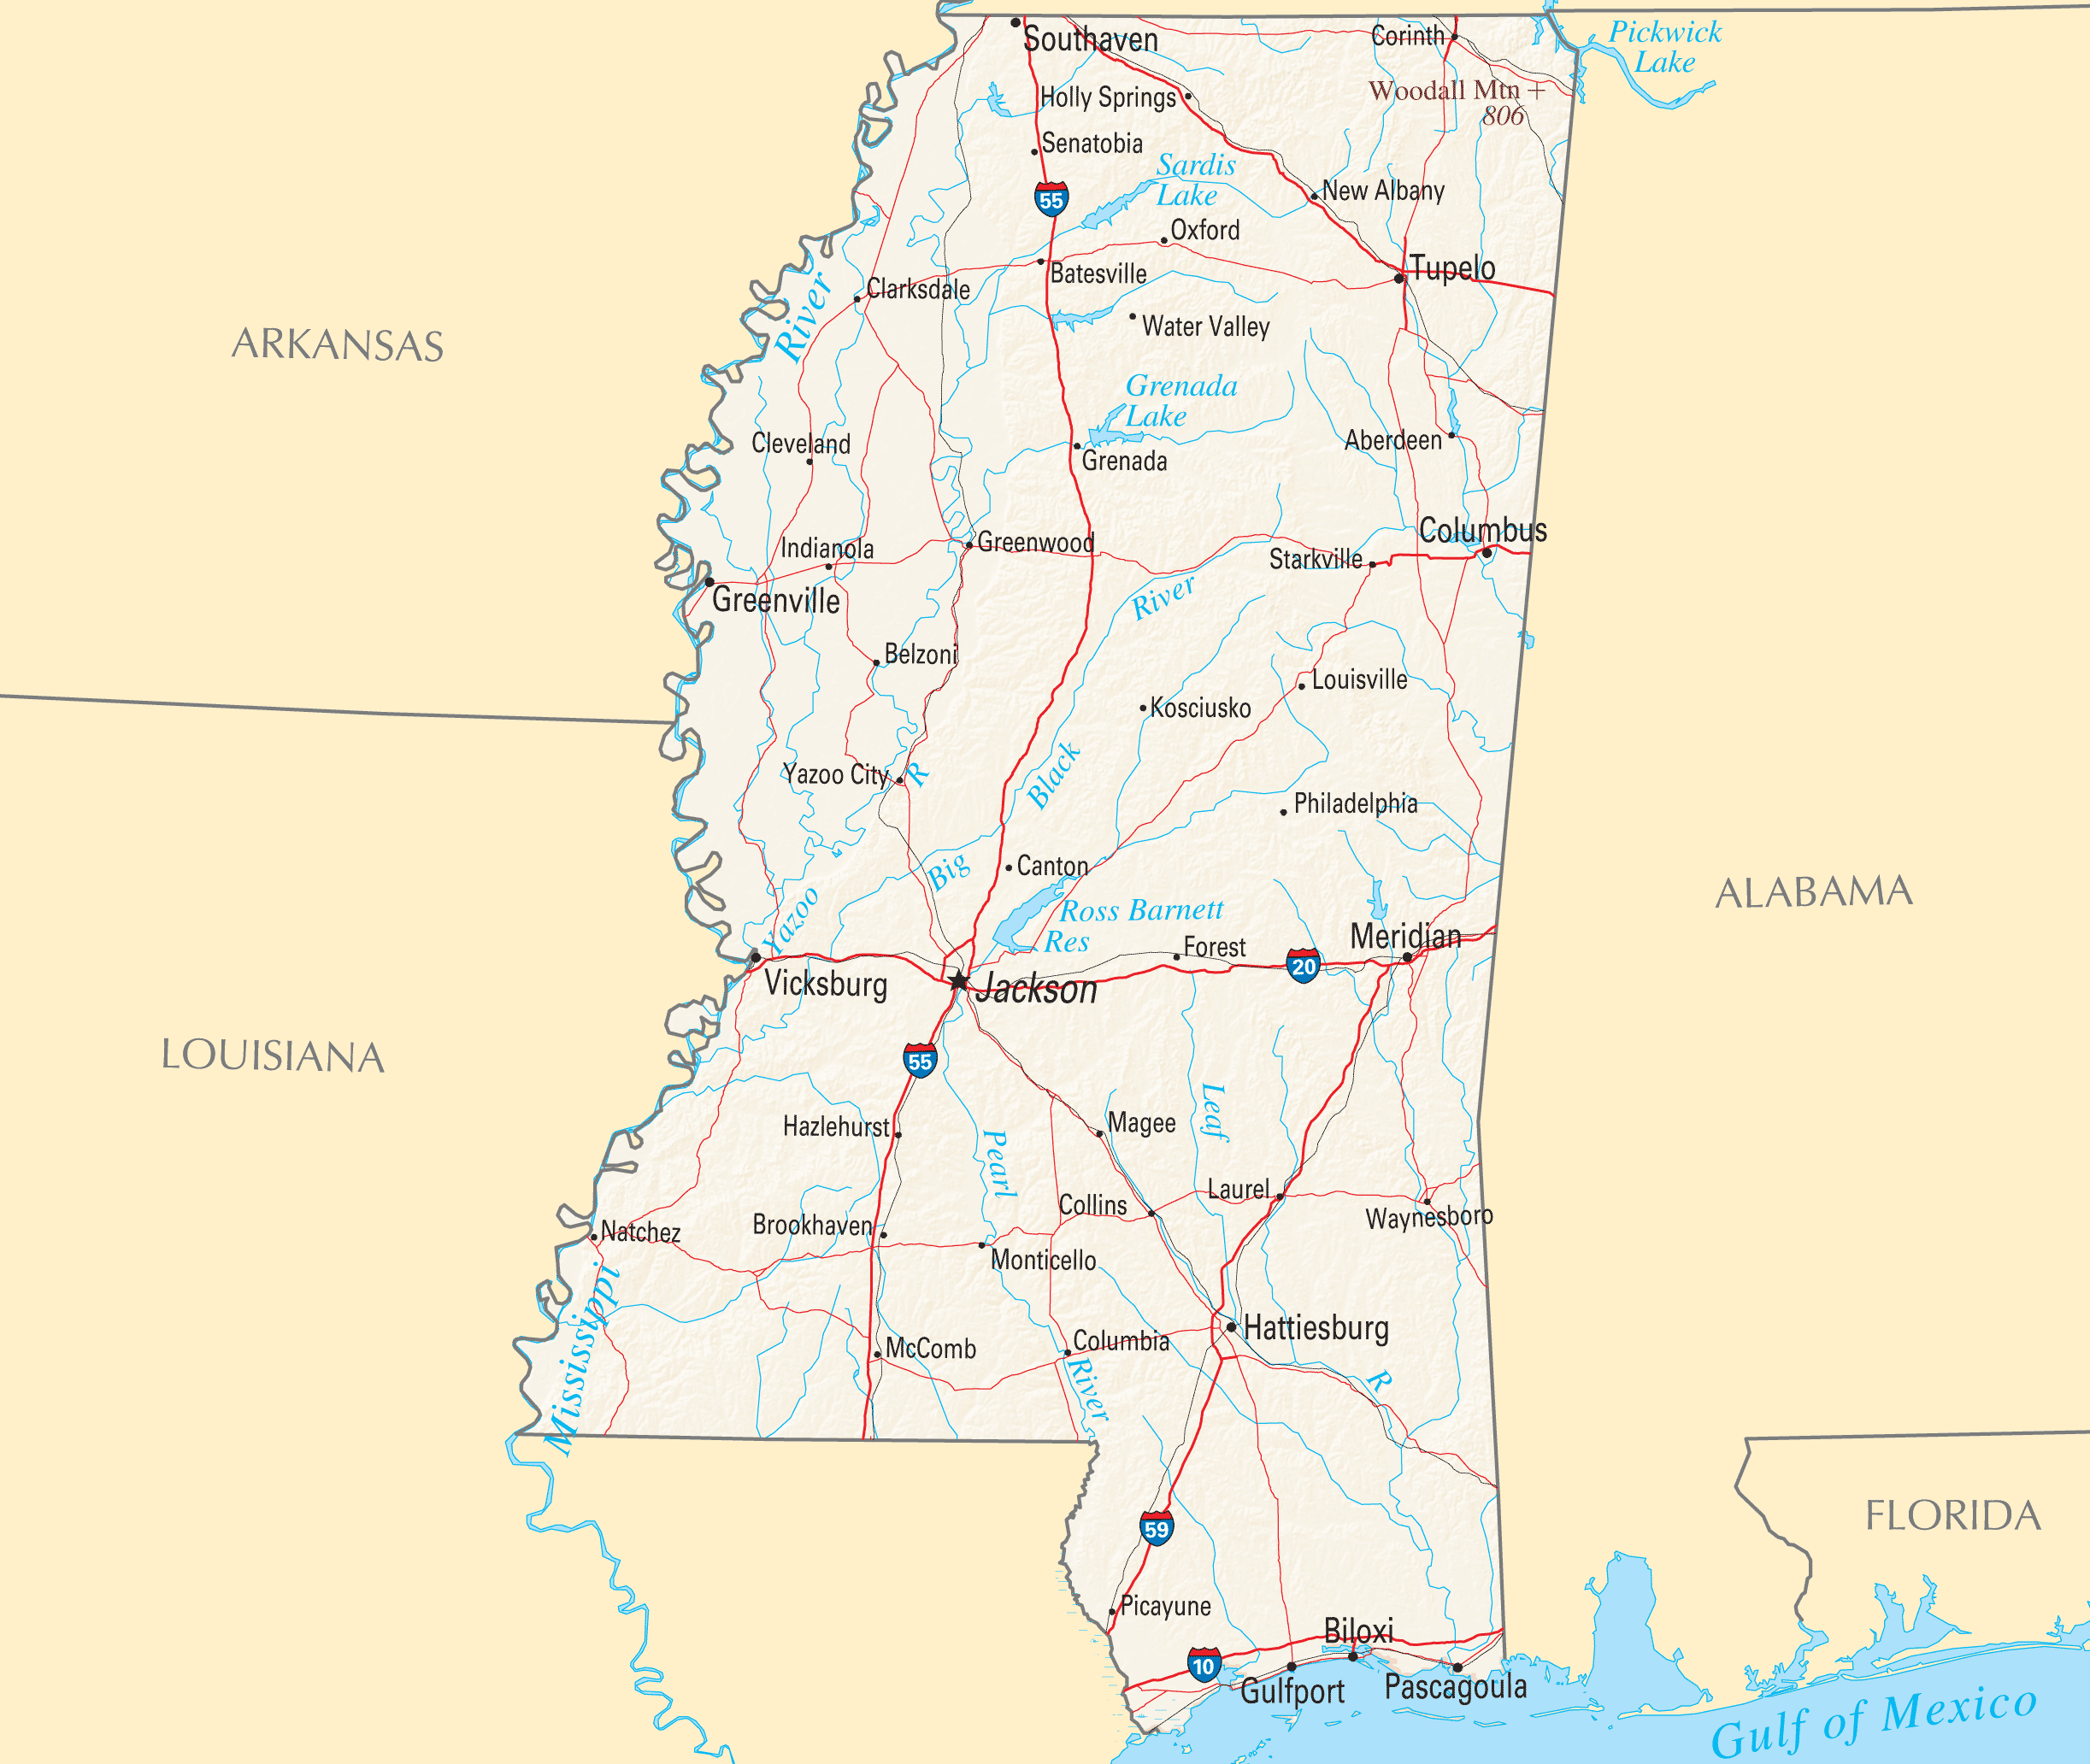 Mississippi Reference Map Mapsofnet - Mississippi maps